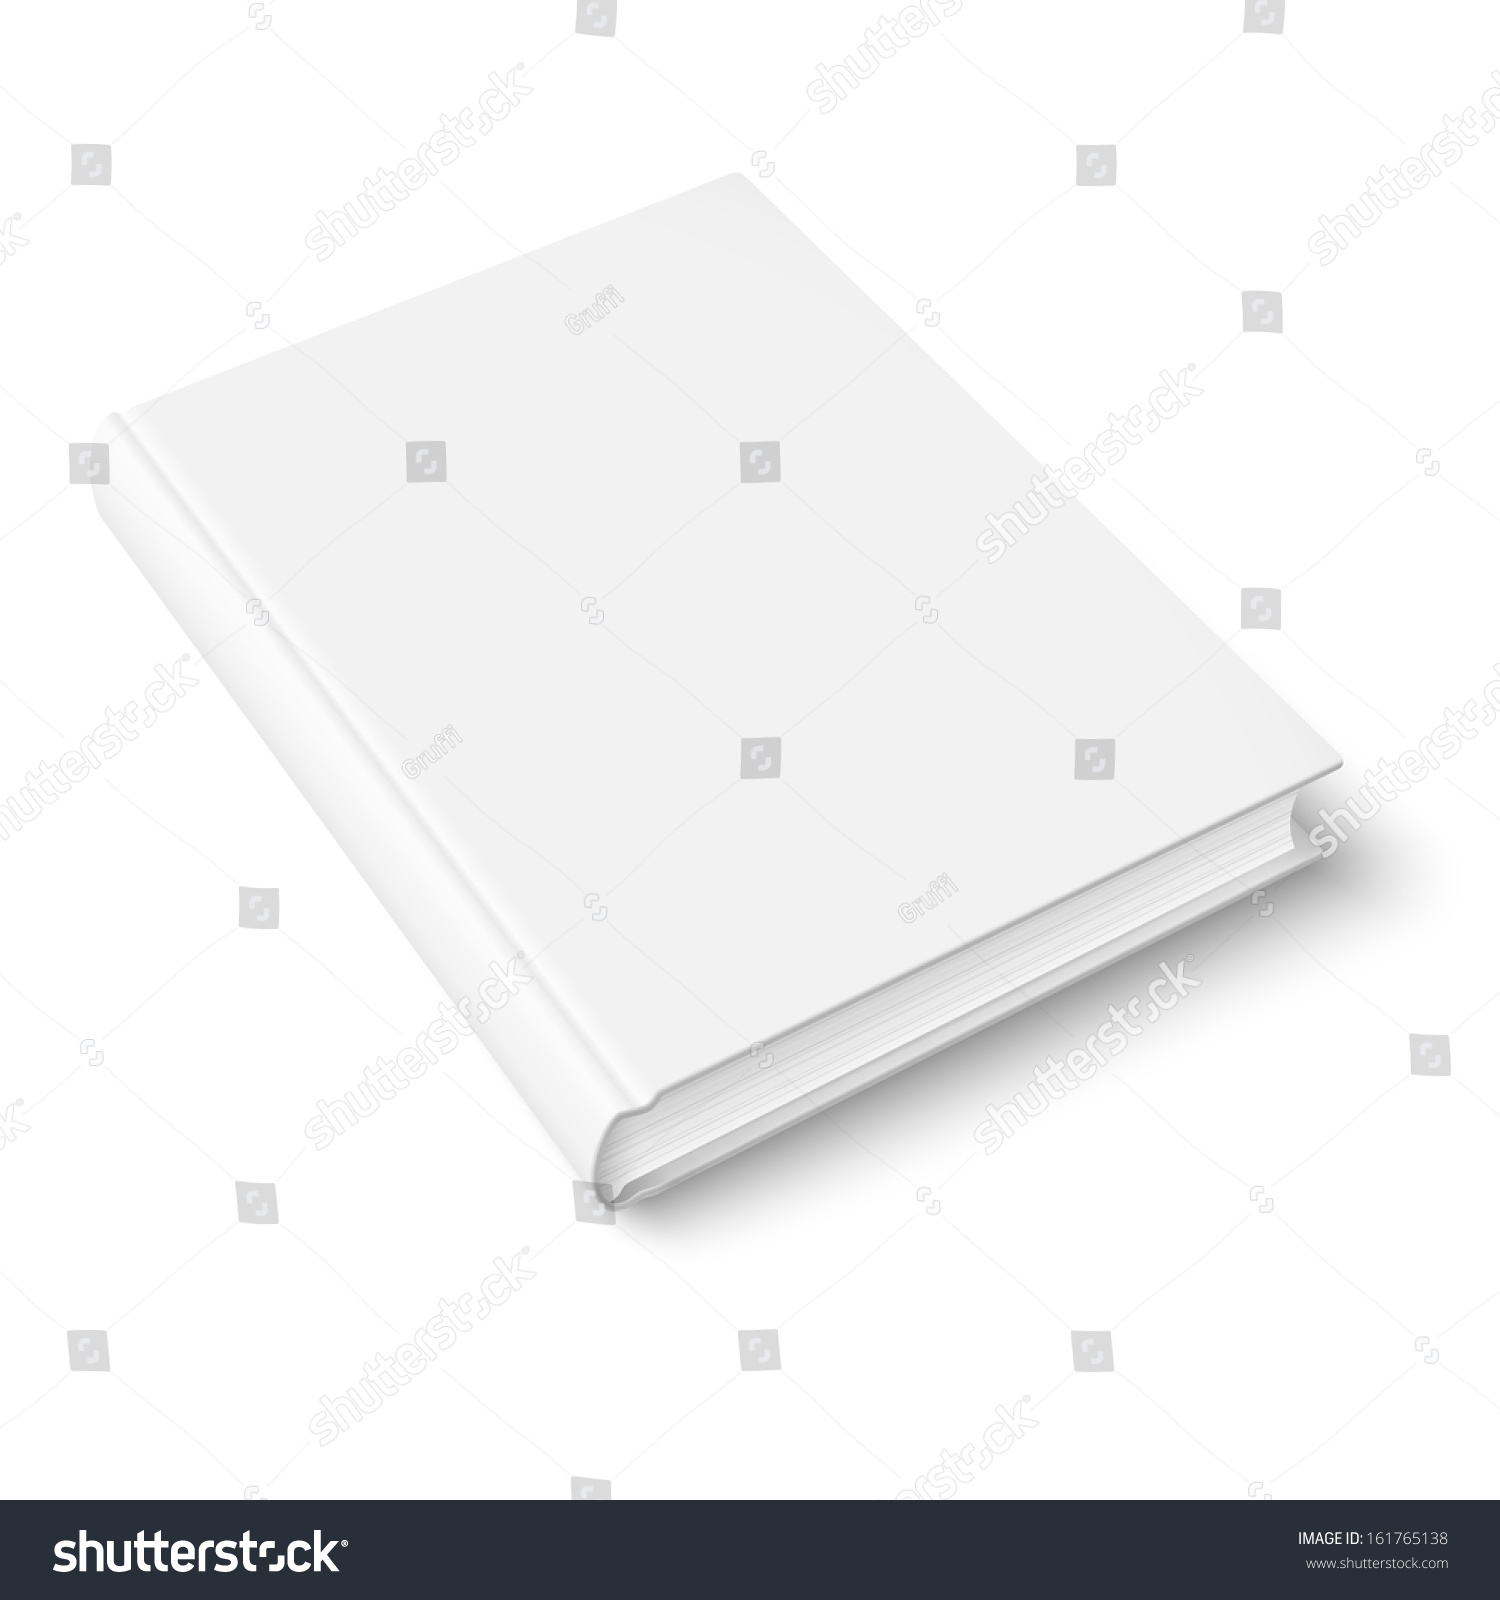 Blank Book Cover Vector Template ~ Blank book cover template on white stock vector